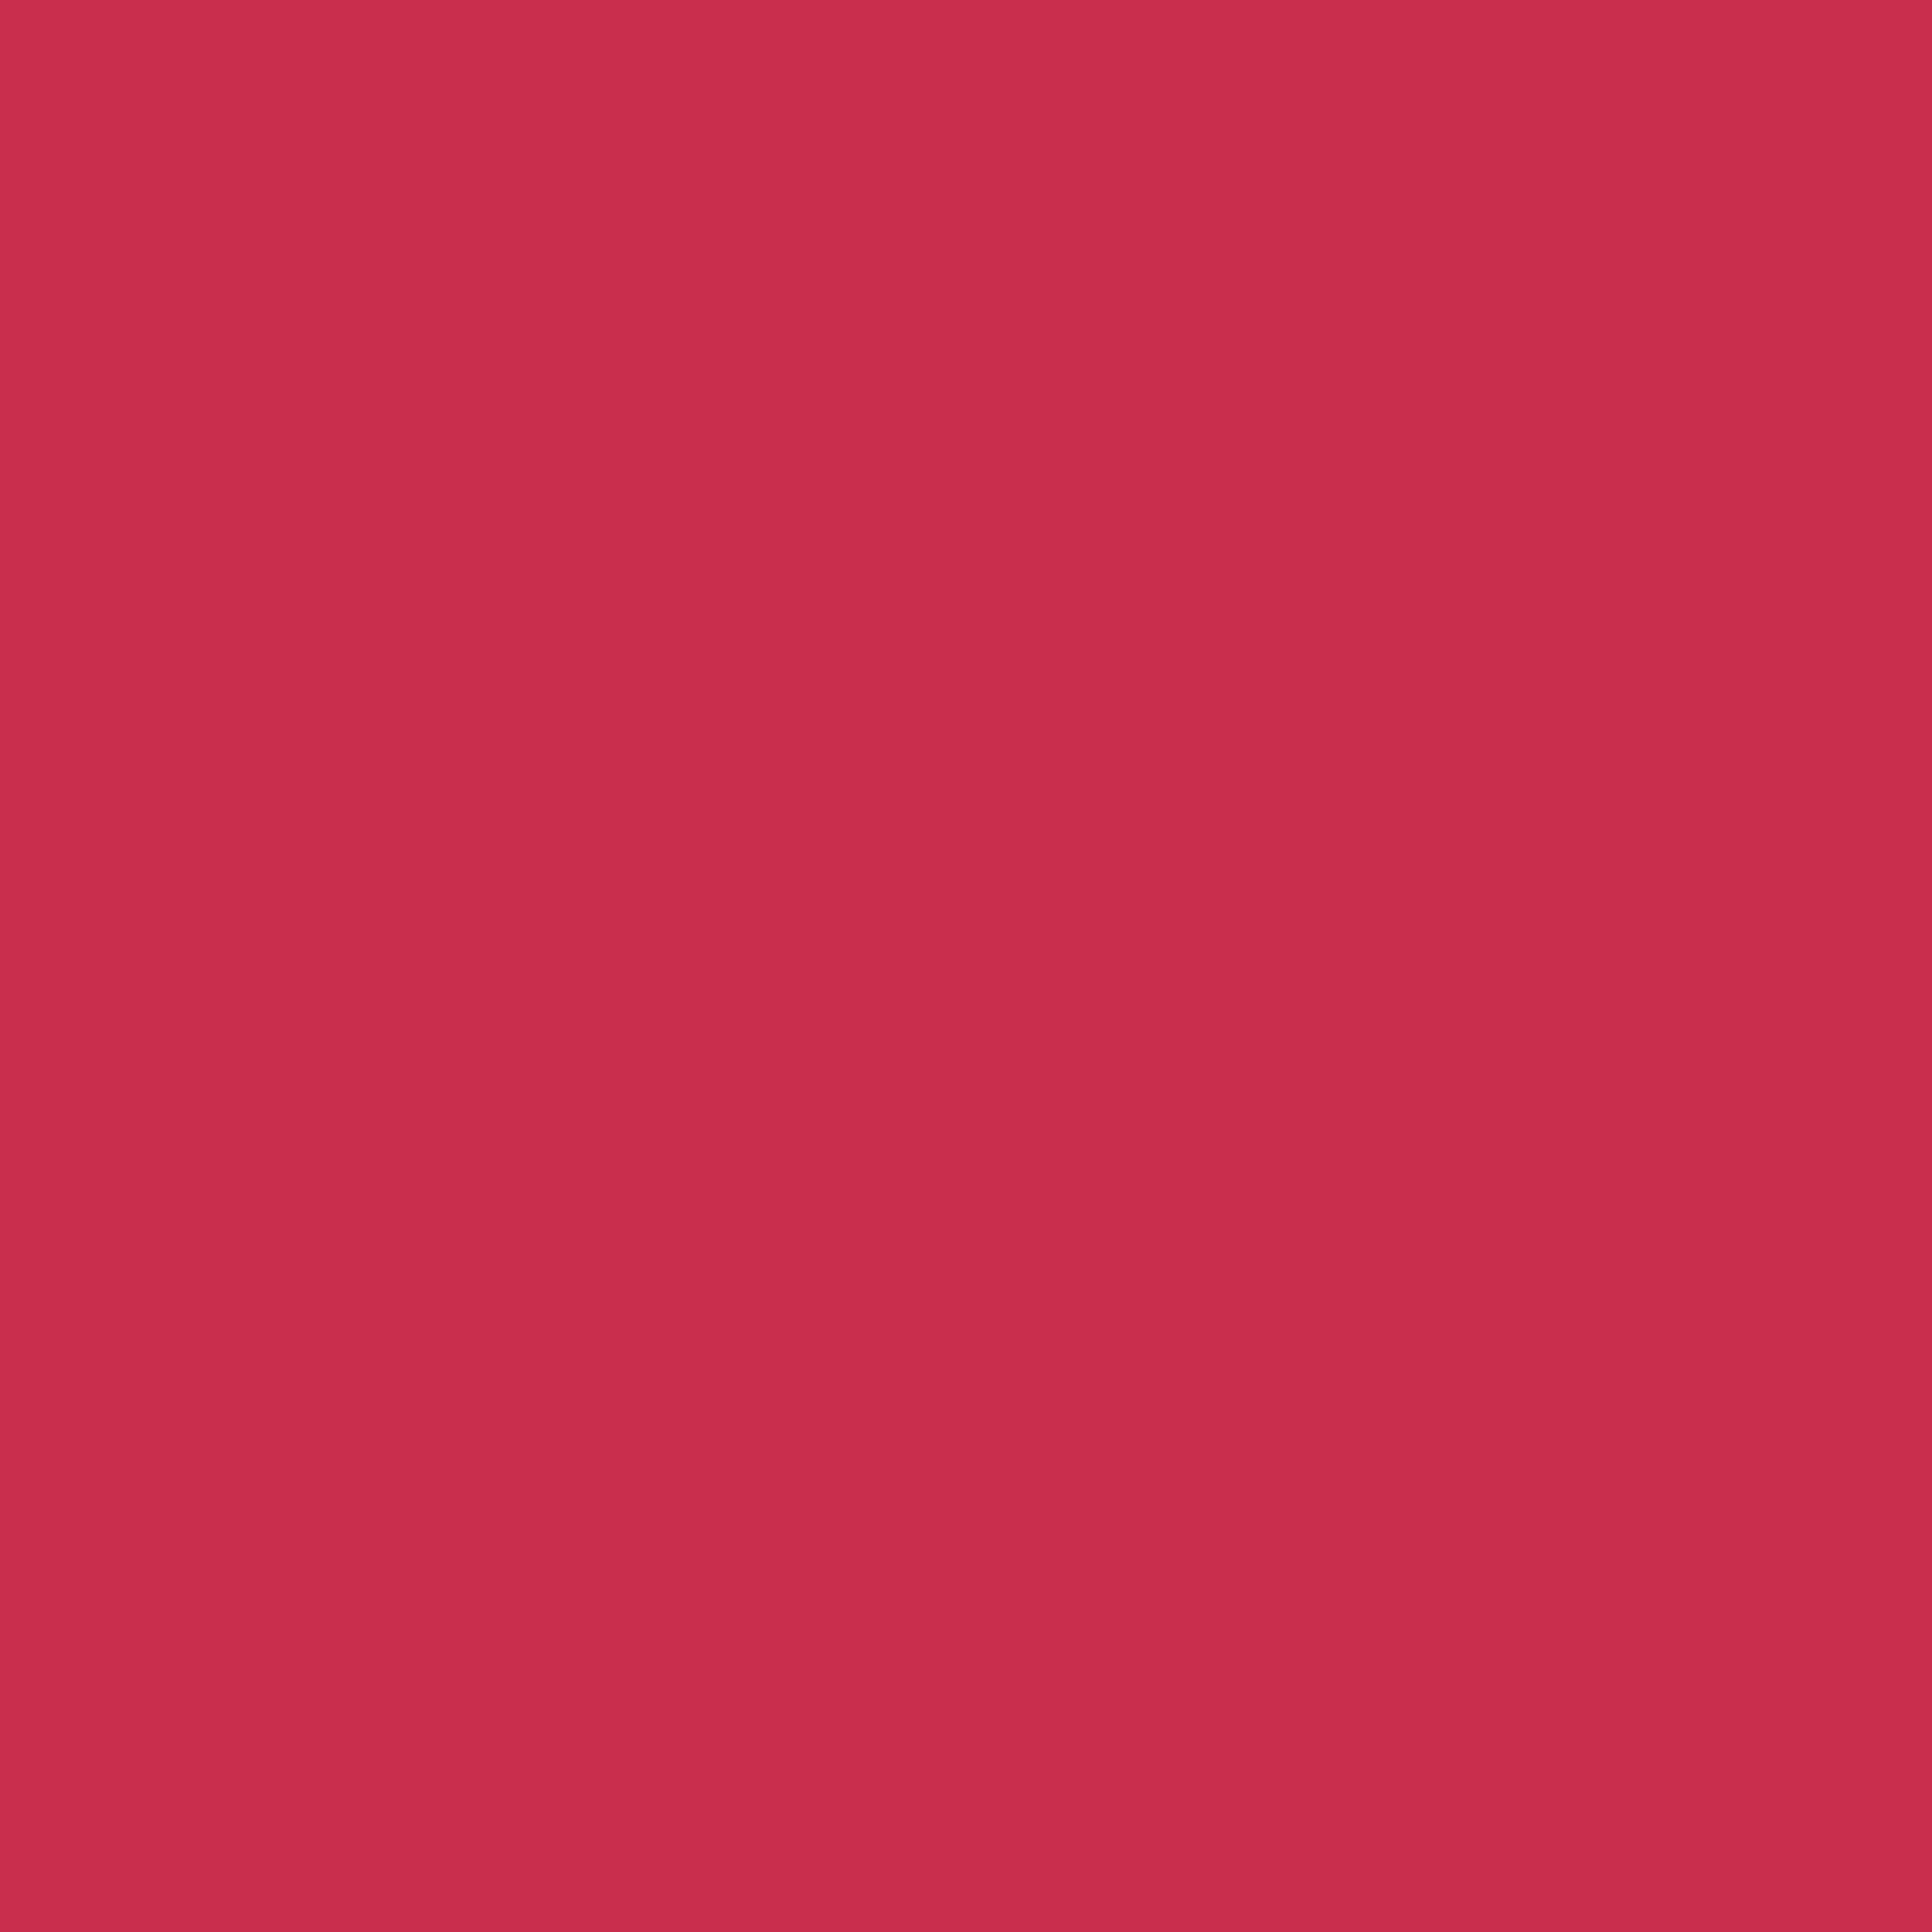 2732x2732 French Raspberry Solid Color Background